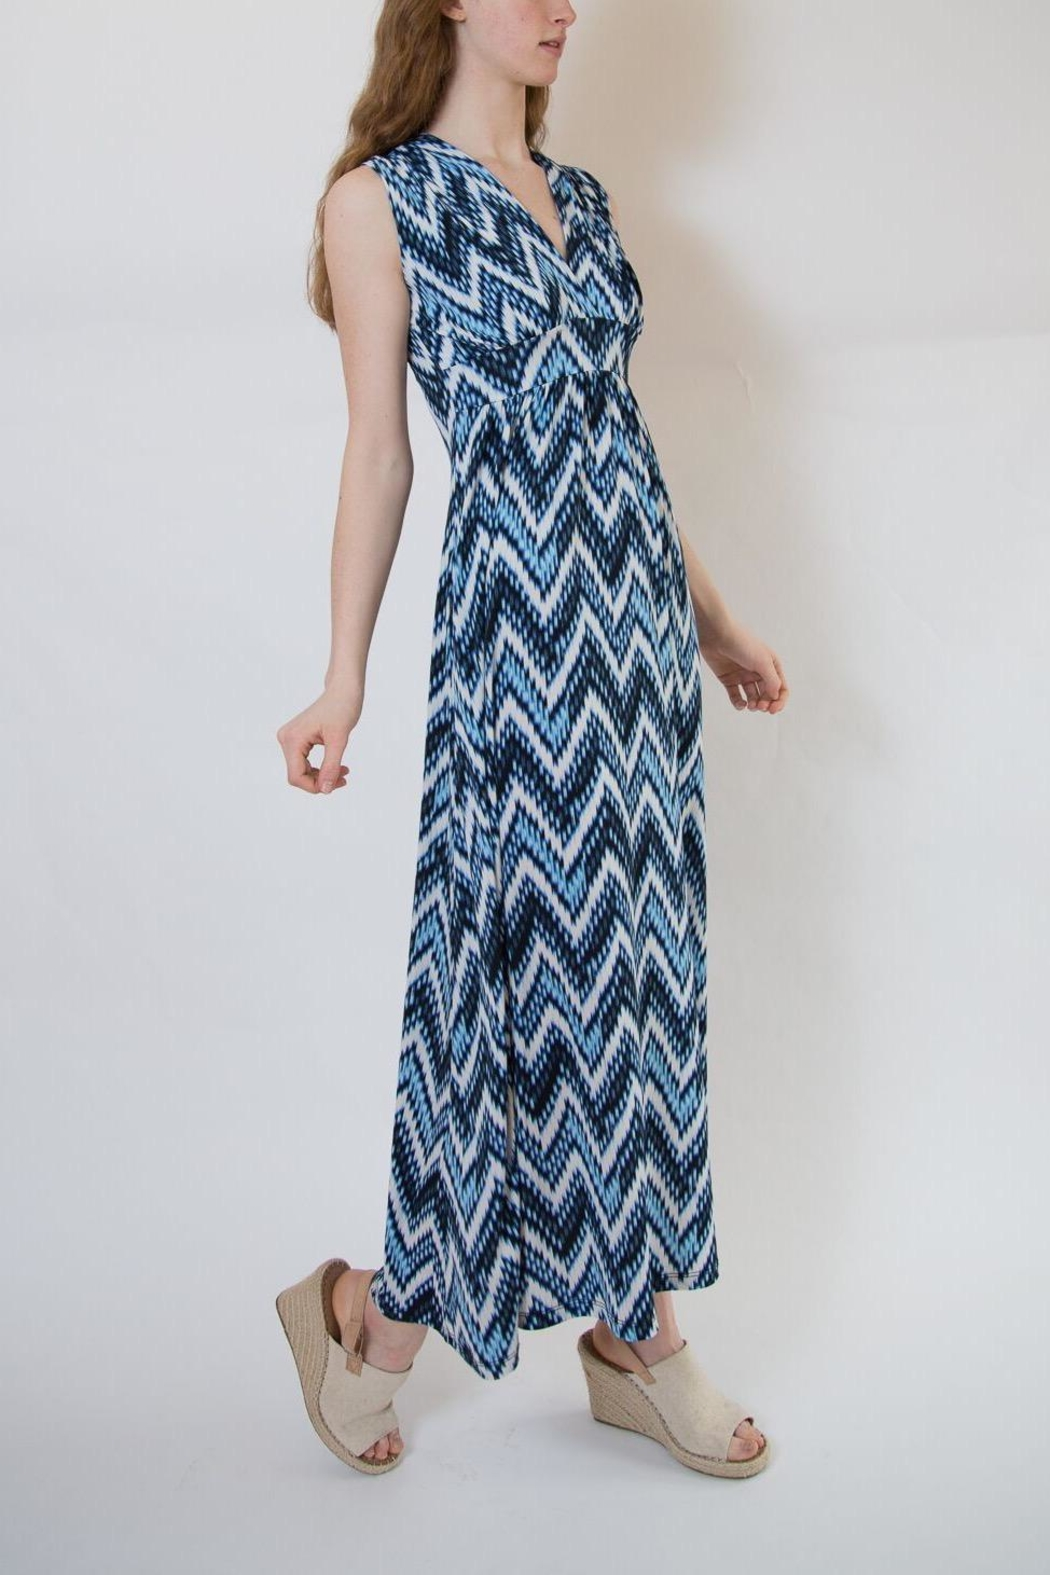 Veronica M Blue Multi Maxi Dress - Main Image